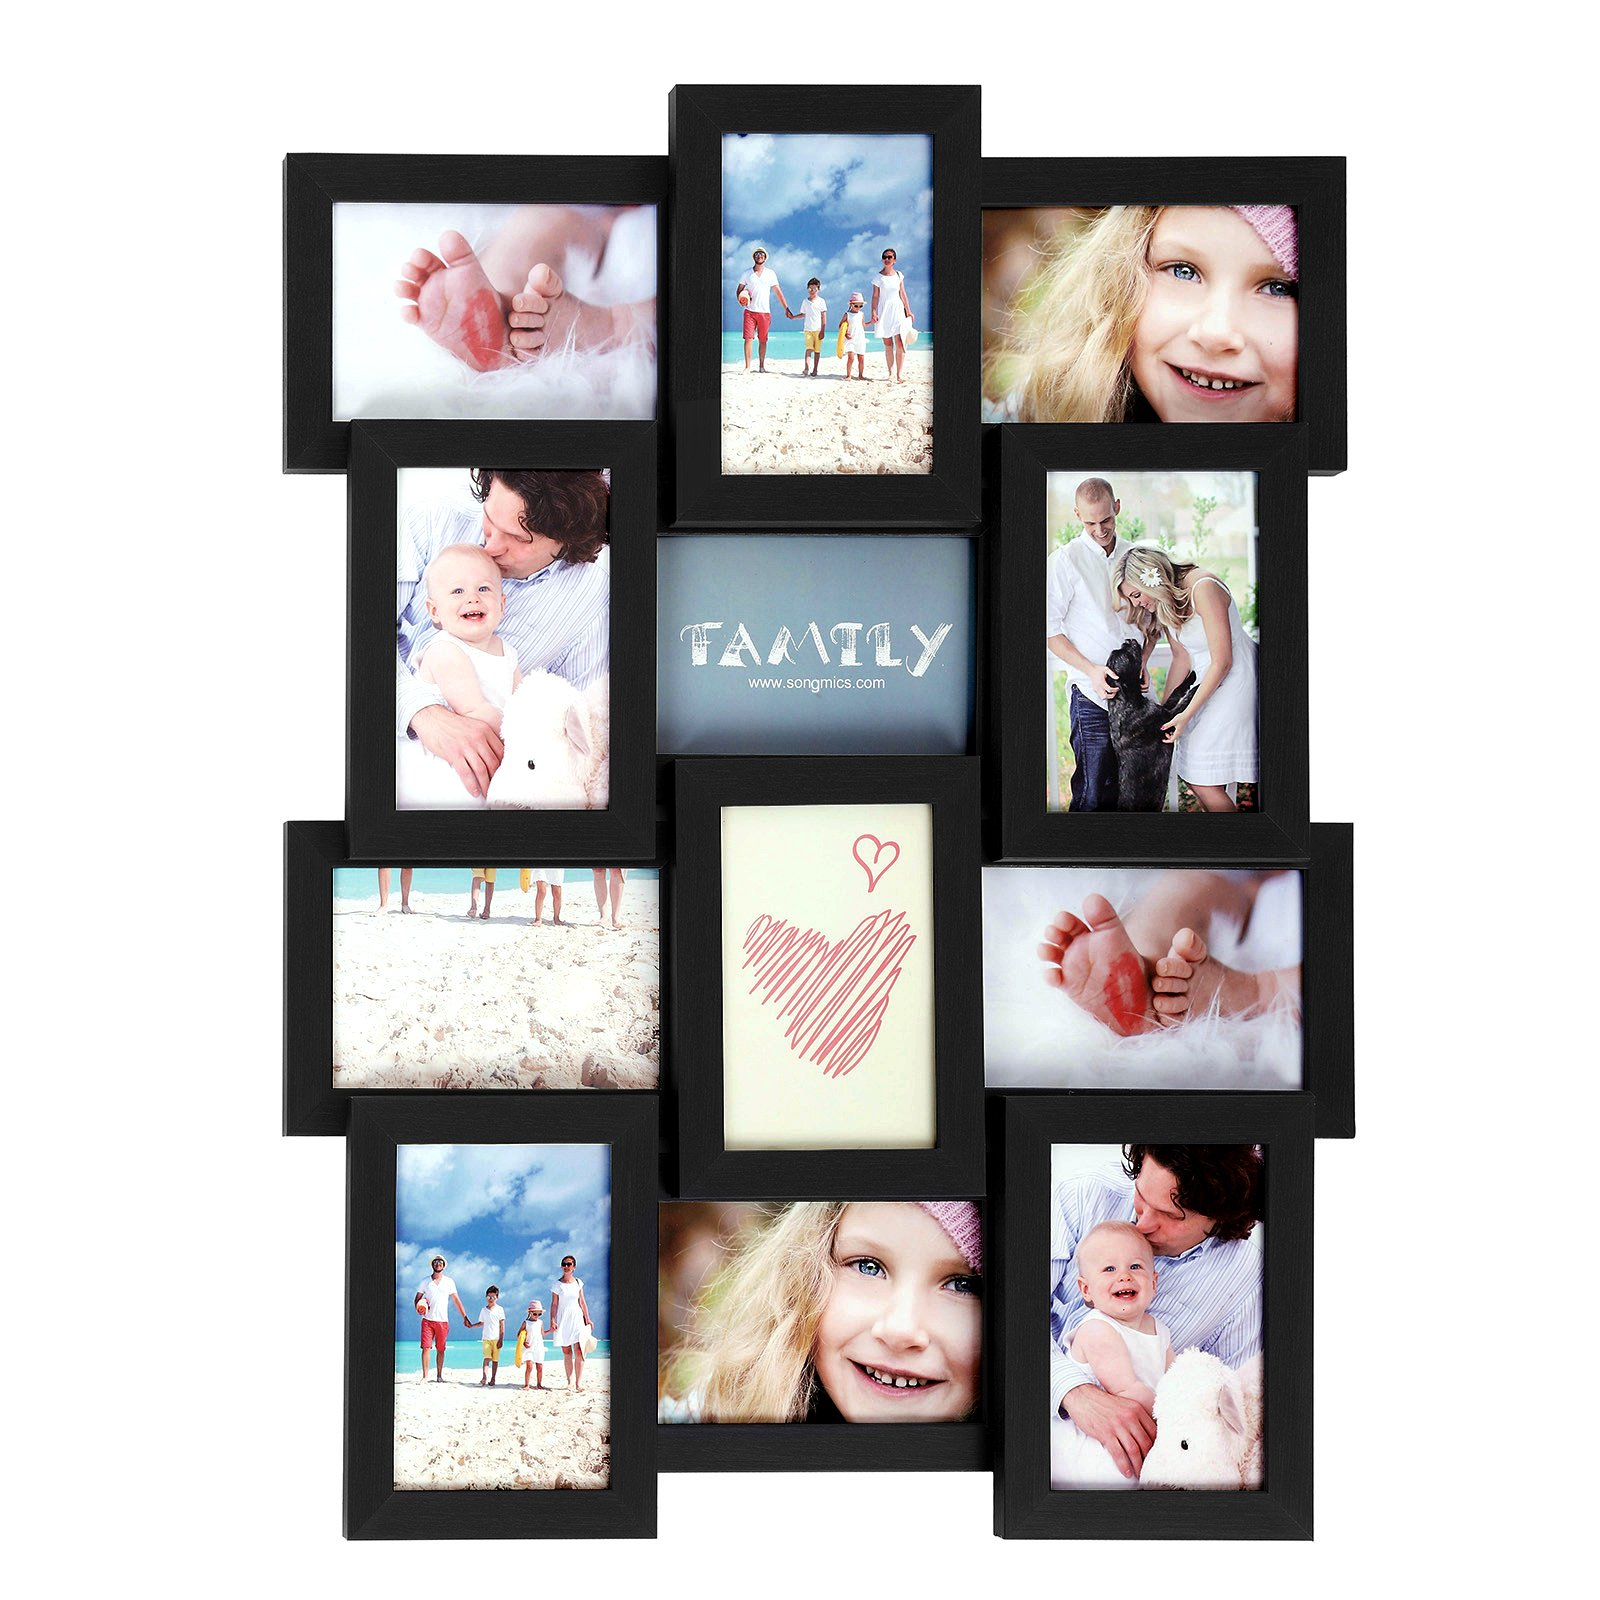 SONGMICS Collage Picture Frames for 12 Photos in 4 x 6 Inches, Assembly Required, Collage Multiple Photos, Glass Front, Wooden Grain, Black URPF26BK by SONGMICS